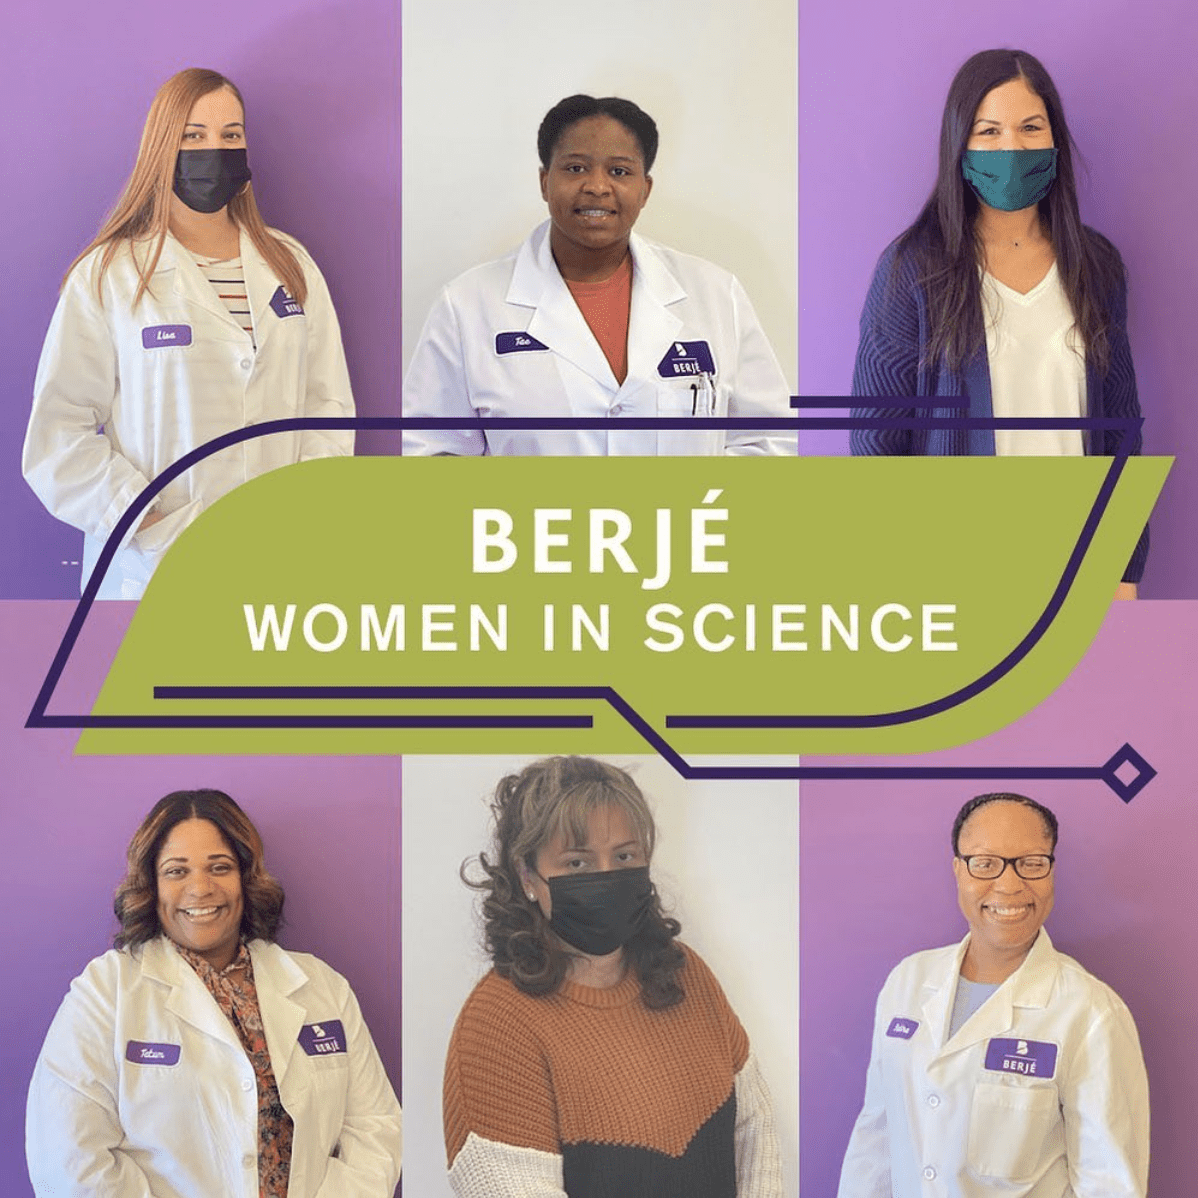 As March comes to a close, in celebration of #womenshistorymonth , we want to bring attention to the wonderful women in our lab. Women now make up around 48% of all workers in the STEM field as opposed to the 38% they made up in 1970. We continue celebrating the amazing scientists on our team and the women leaders in our industry who inspire the next generation.  #womeninscience #womeninspiringwomen